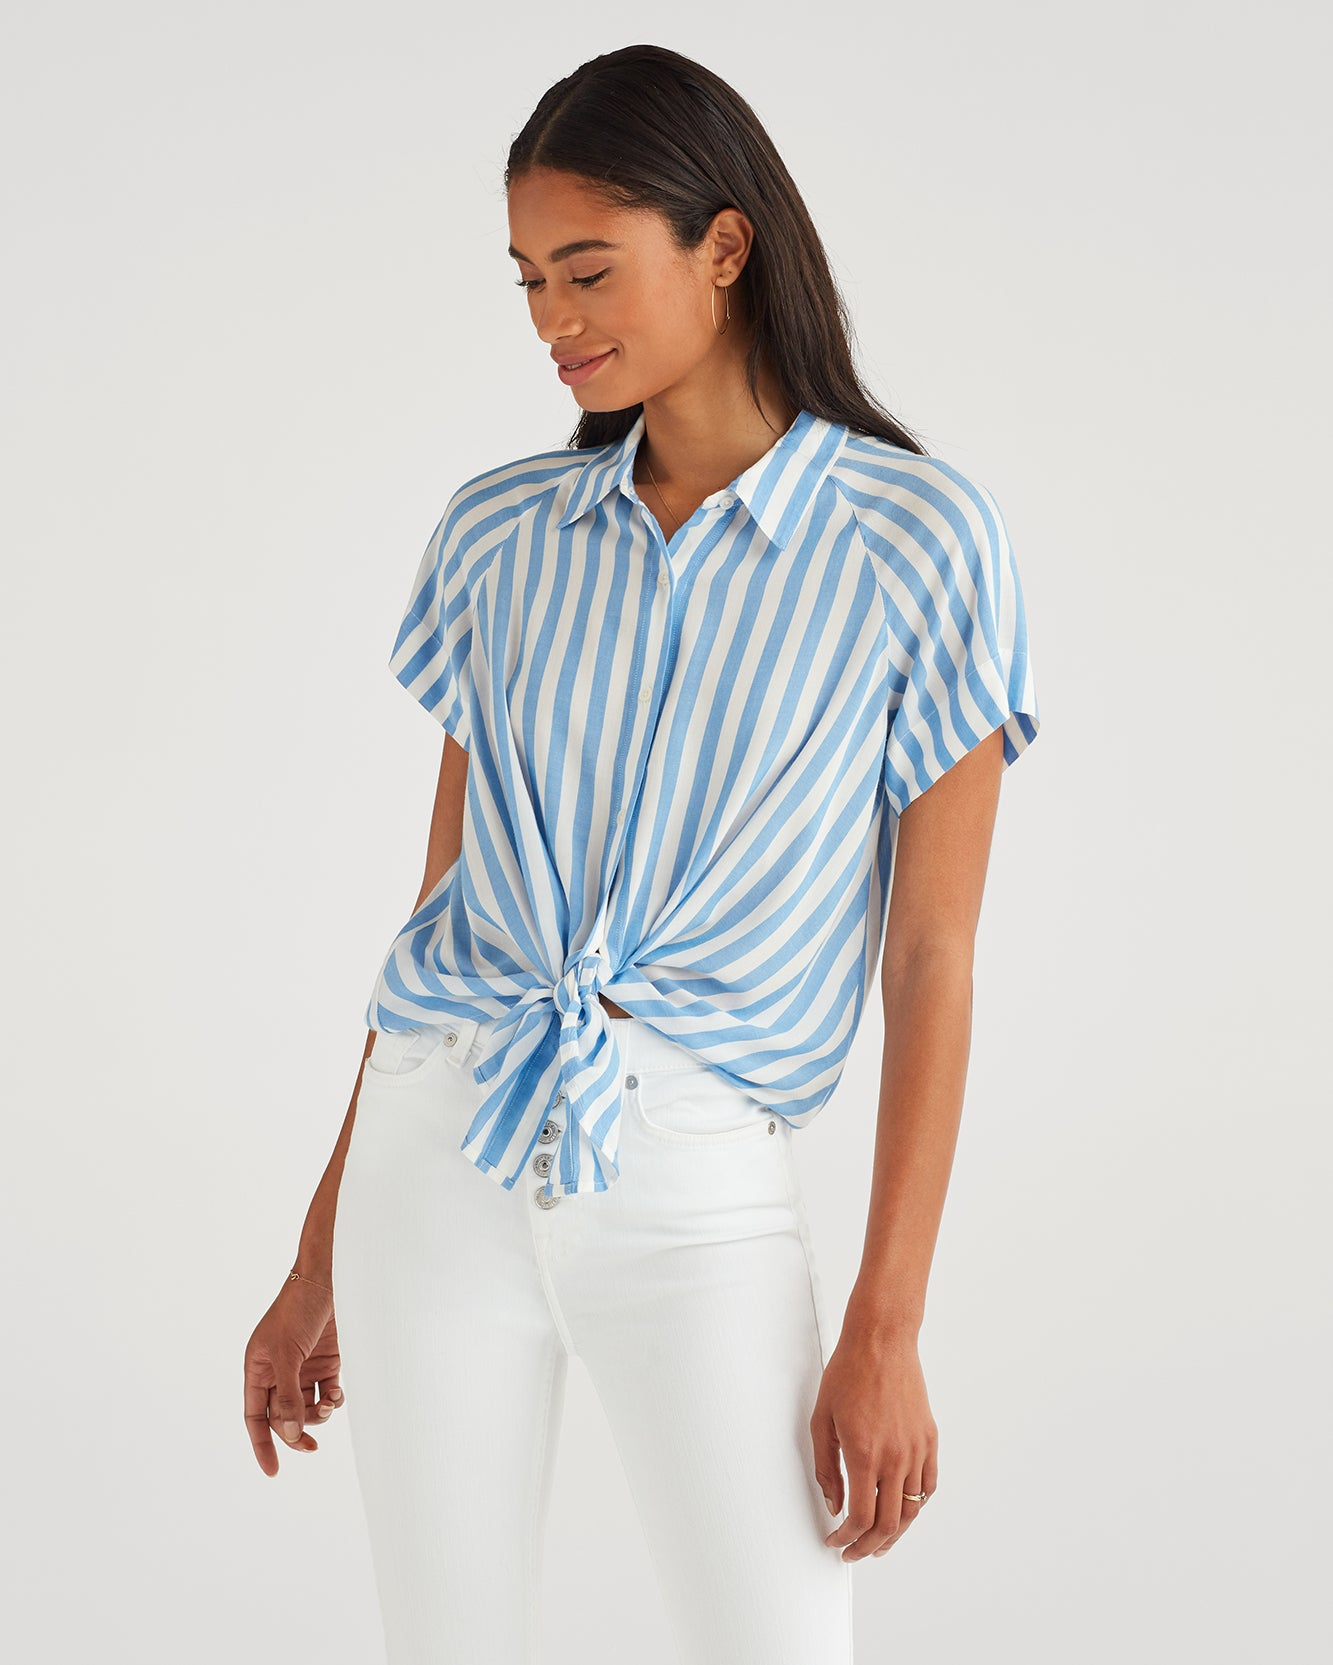 Image of Cap Sleeve Tie Front Shirt in Blue and White Stripe